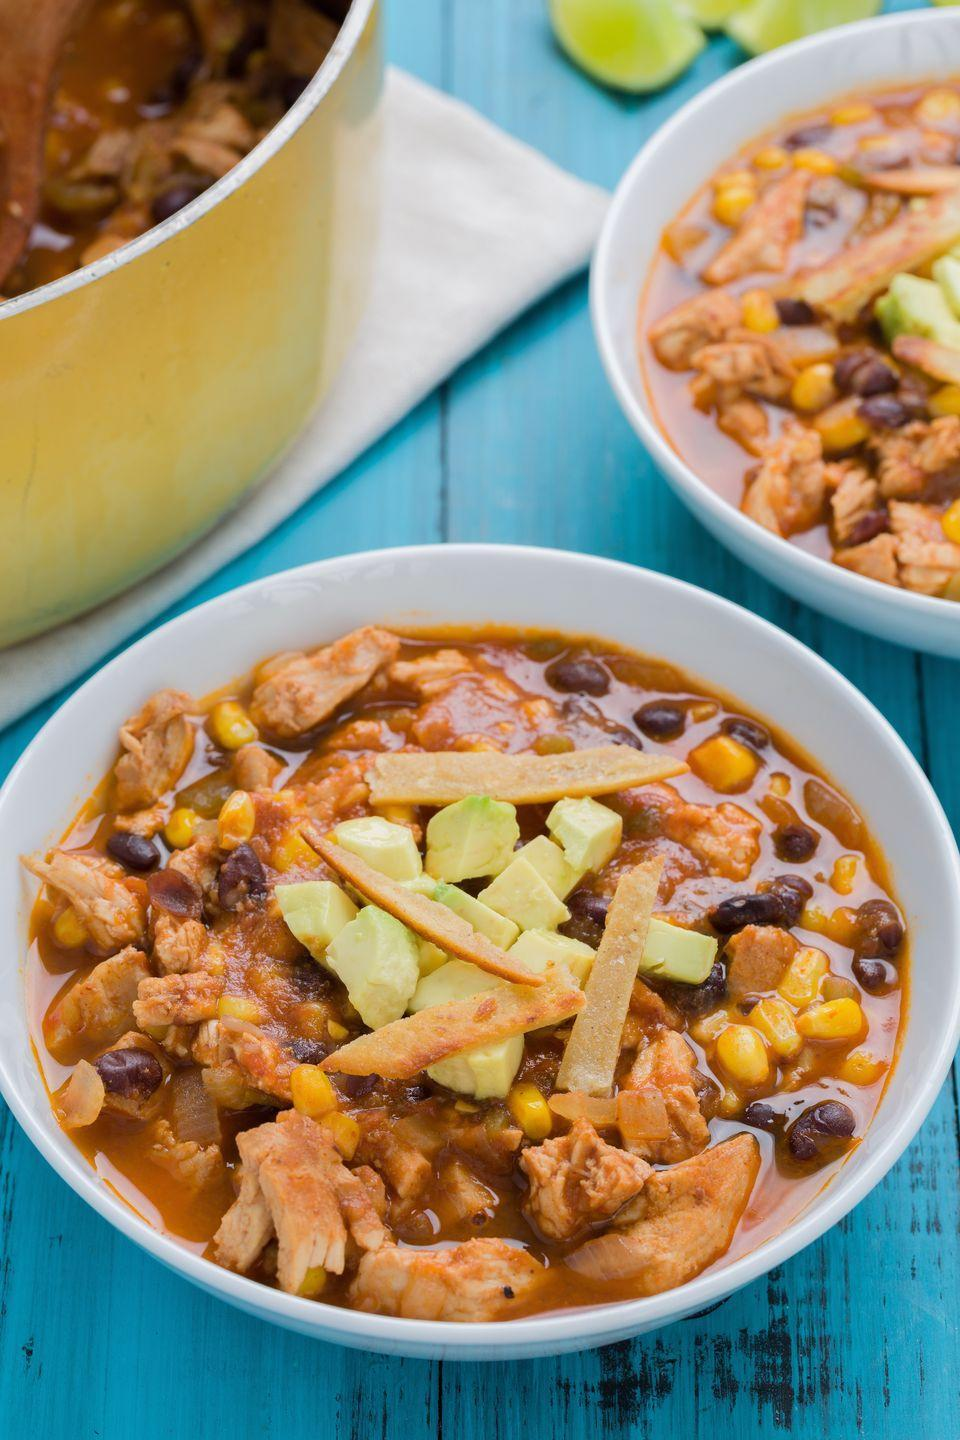 """<p><span>You can't buy this at Chipotle.</span></p><p><span>Get the recipe from </span><a href=""""https://www.delish.com/cooking/recipe-ideas/recipes/a44200/carnitas-enchilada-soup-recipe/"""" rel=""""nofollow noopener"""" target=""""_blank"""" data-ylk=""""slk:Delish"""" class=""""link rapid-noclick-resp"""">Delish</a><span>.</span></p>"""